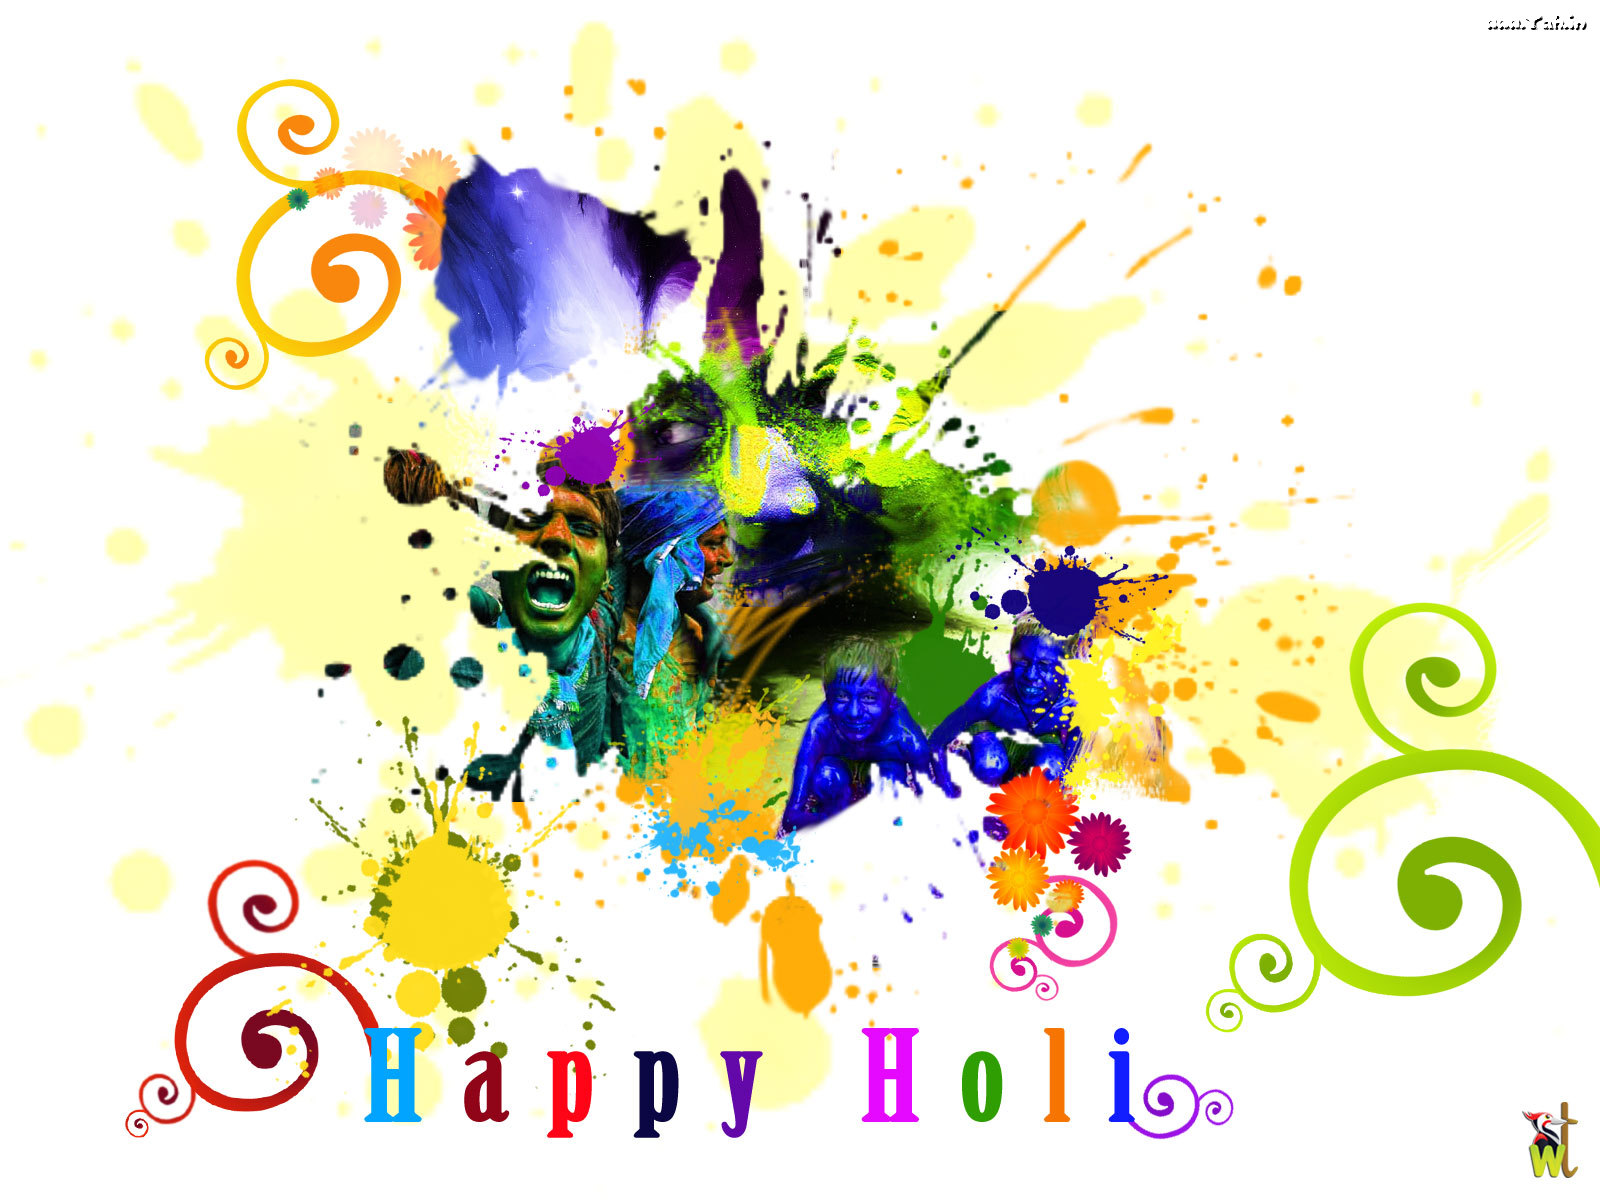 Holi Screensaversdownload Holi Screen Saversfree Holi Screensavers